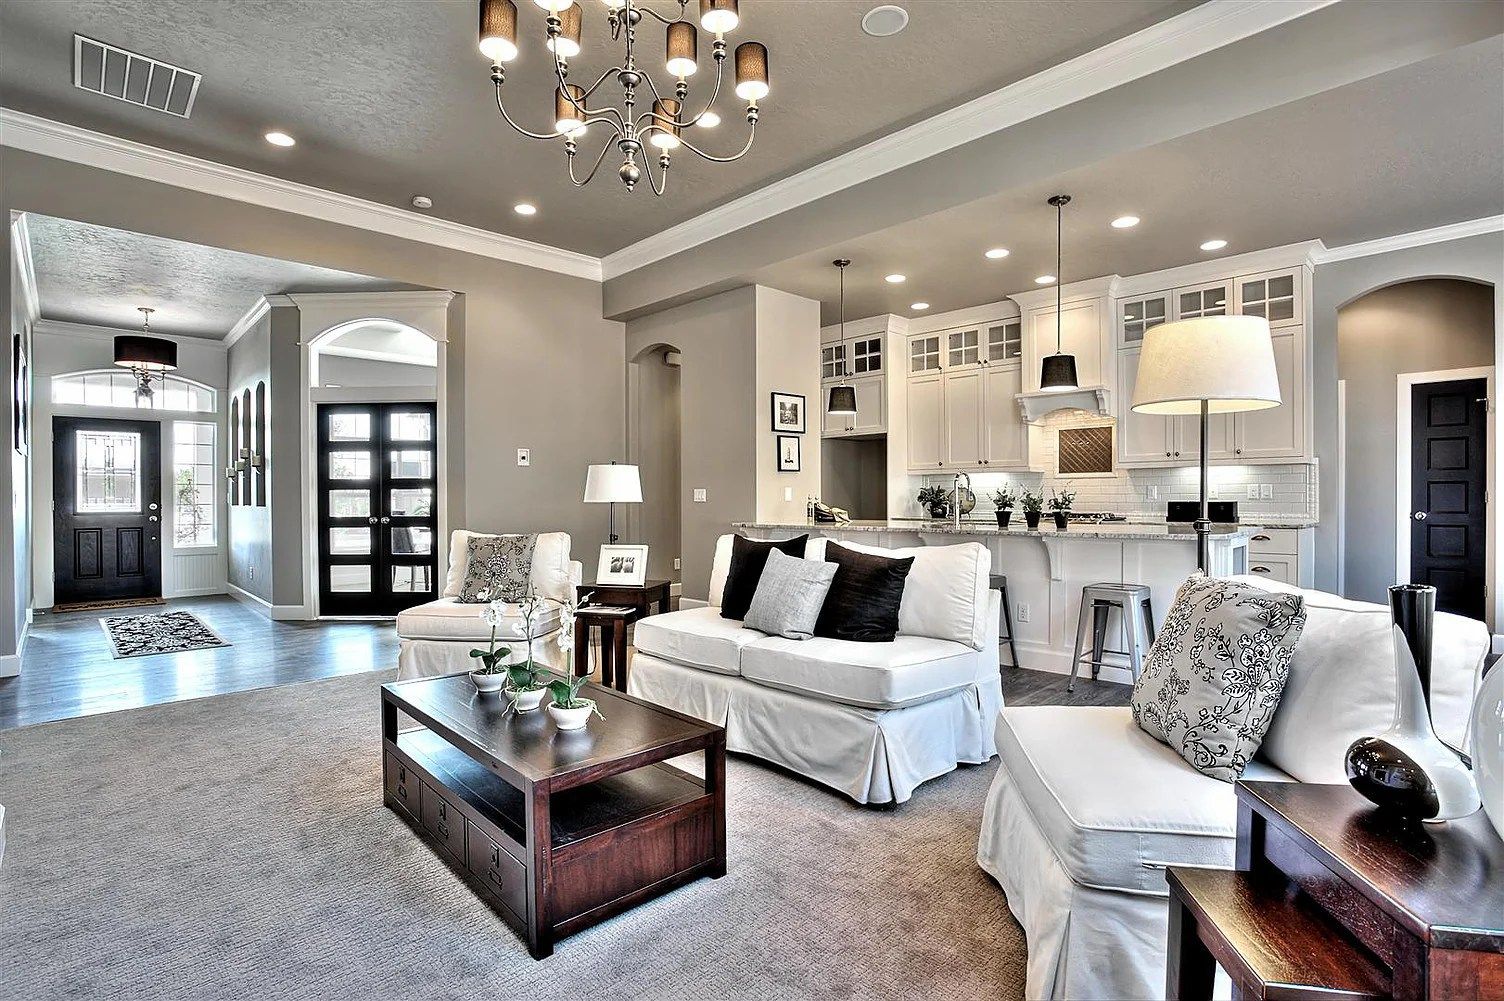 neutral paint colors for living room 2016 christmas decorating small rooms bestselling sherwin williams wall color is requisite gray clark and co homes